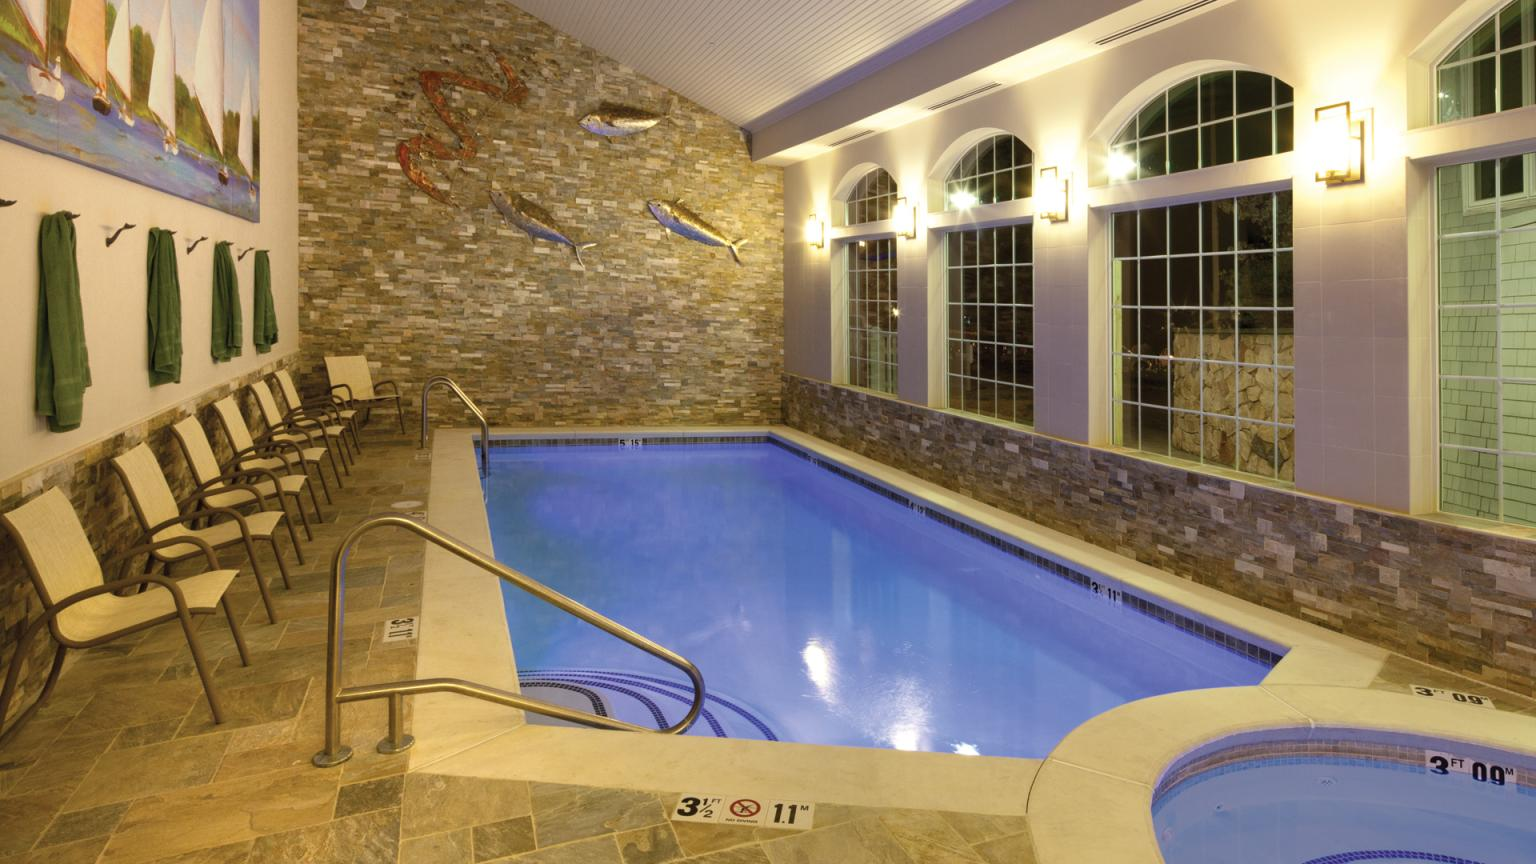 Stage Neck Inn Indoor pool and hot tub with evening lighting